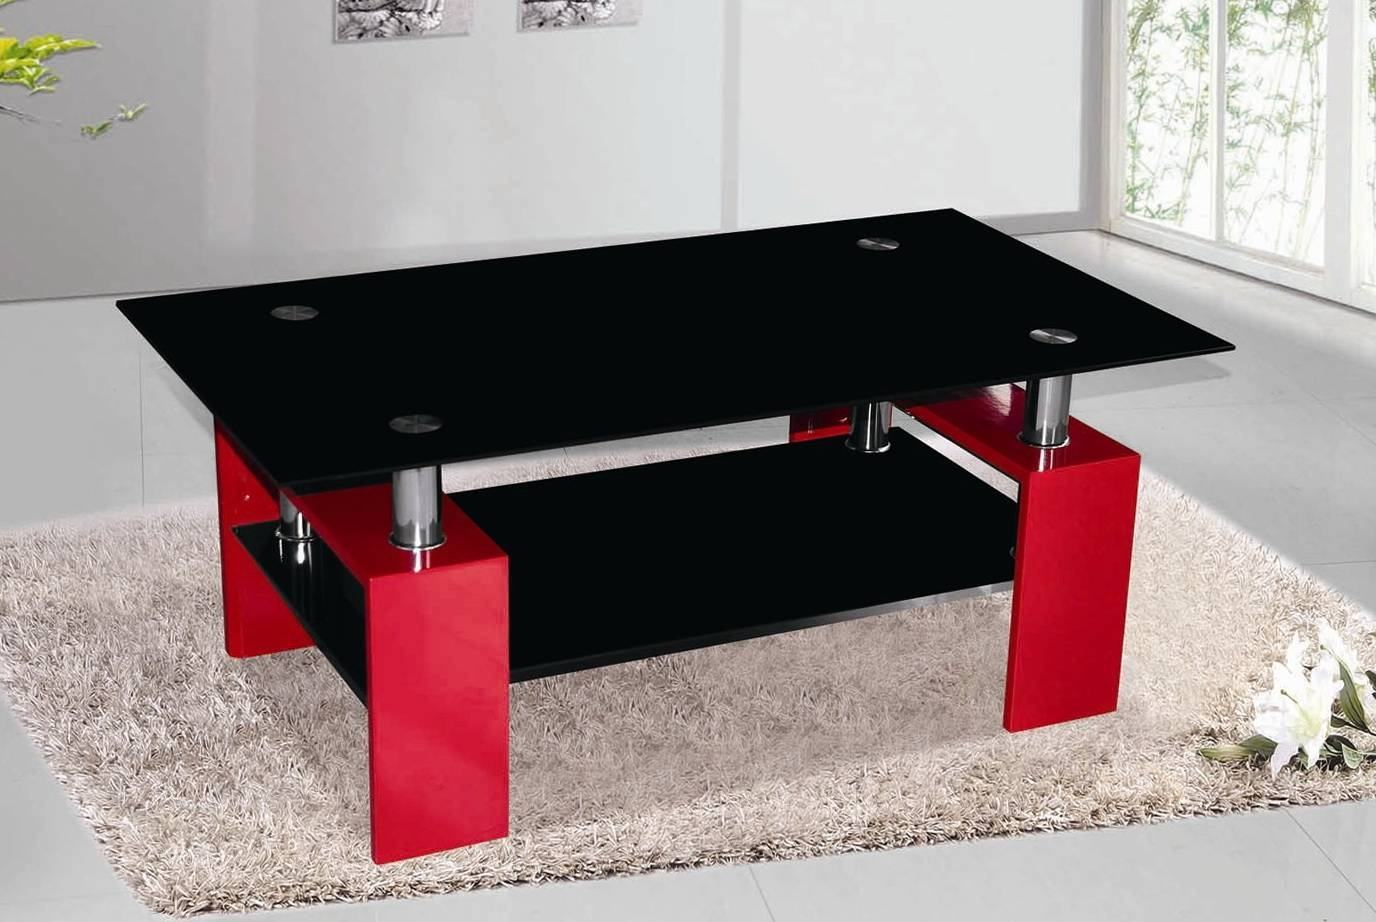 North Shore Furniture Minimalist Modern Style Glass Coffee Table within Round Red Coffee Tables (Image 20 of 30)